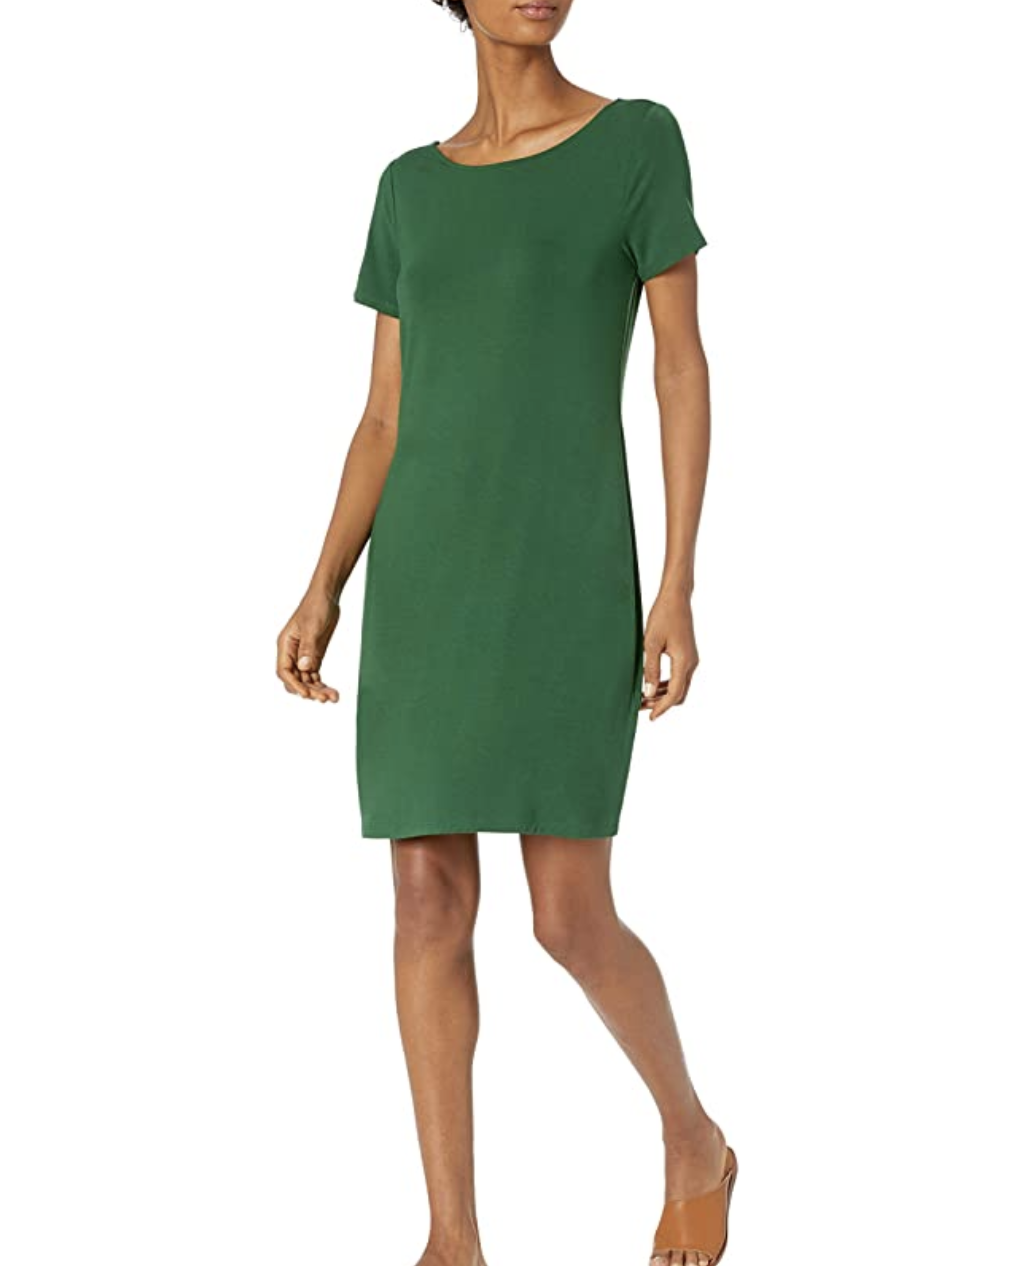 A model in a green t-shirt dress with a scoop neckline that falls just above the knee